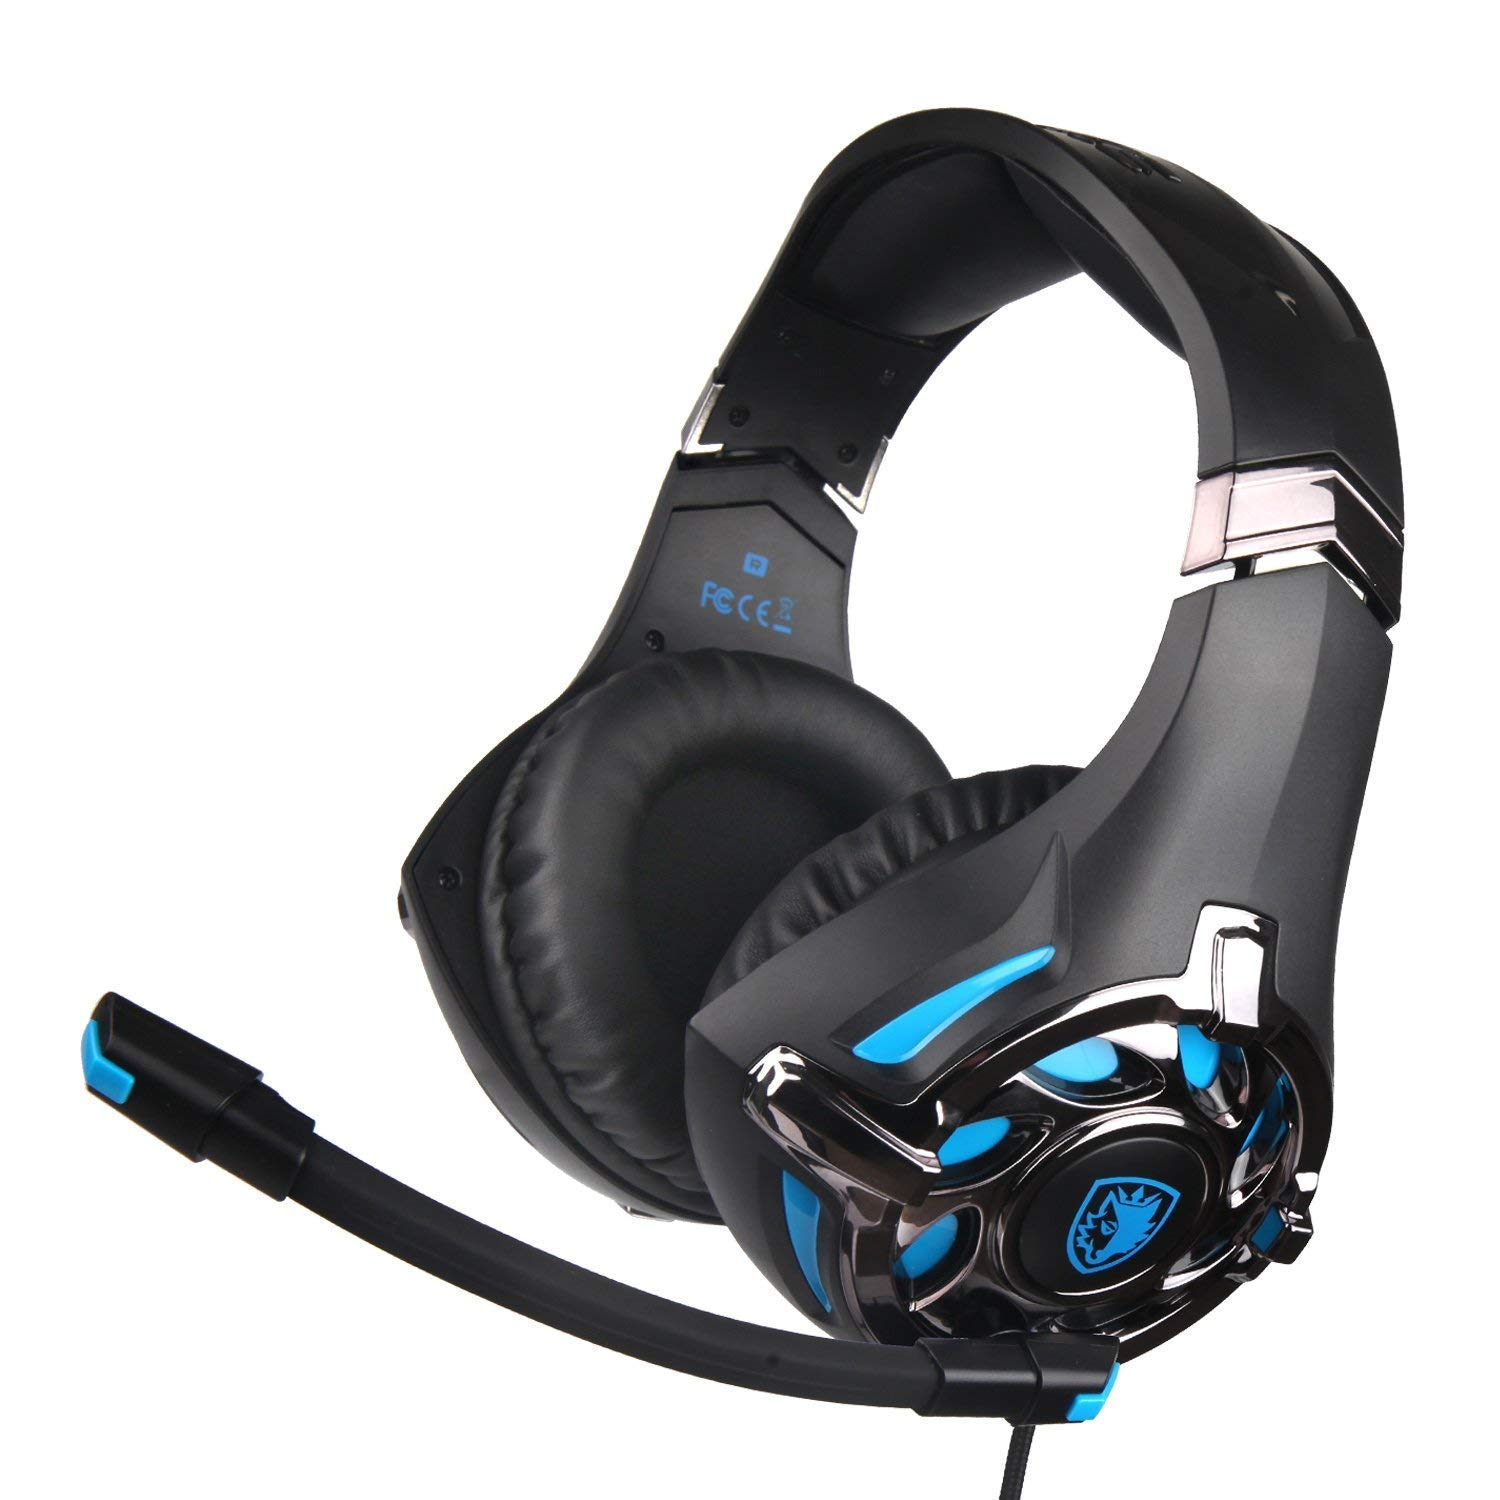 Sades SA822 Gaming Headset for PS4, Xbox One (Adapter Need), PC Over-Ear Gaming Headphone with Crystal Clear Sound, Flexible& Noise-canceling Microphone for Laptop,Mobile,Ipad(Black&Blue)